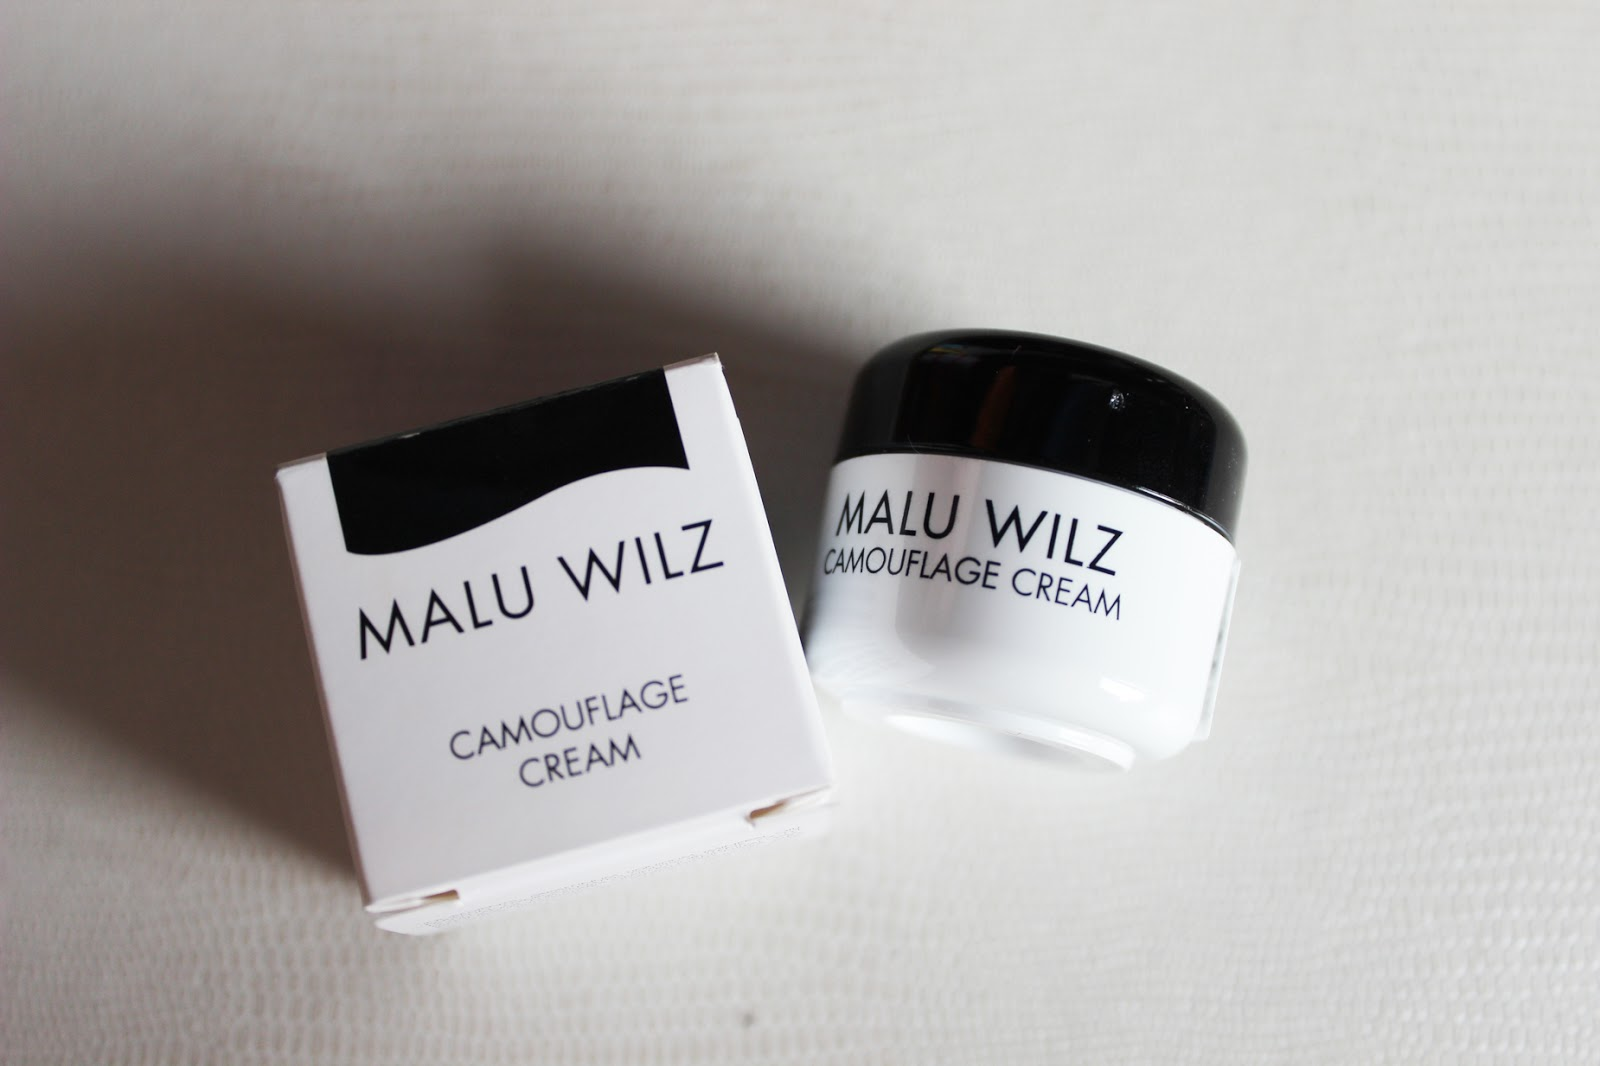 my sugarcoffee review malu wilz camouflage cream. Black Bedroom Furniture Sets. Home Design Ideas